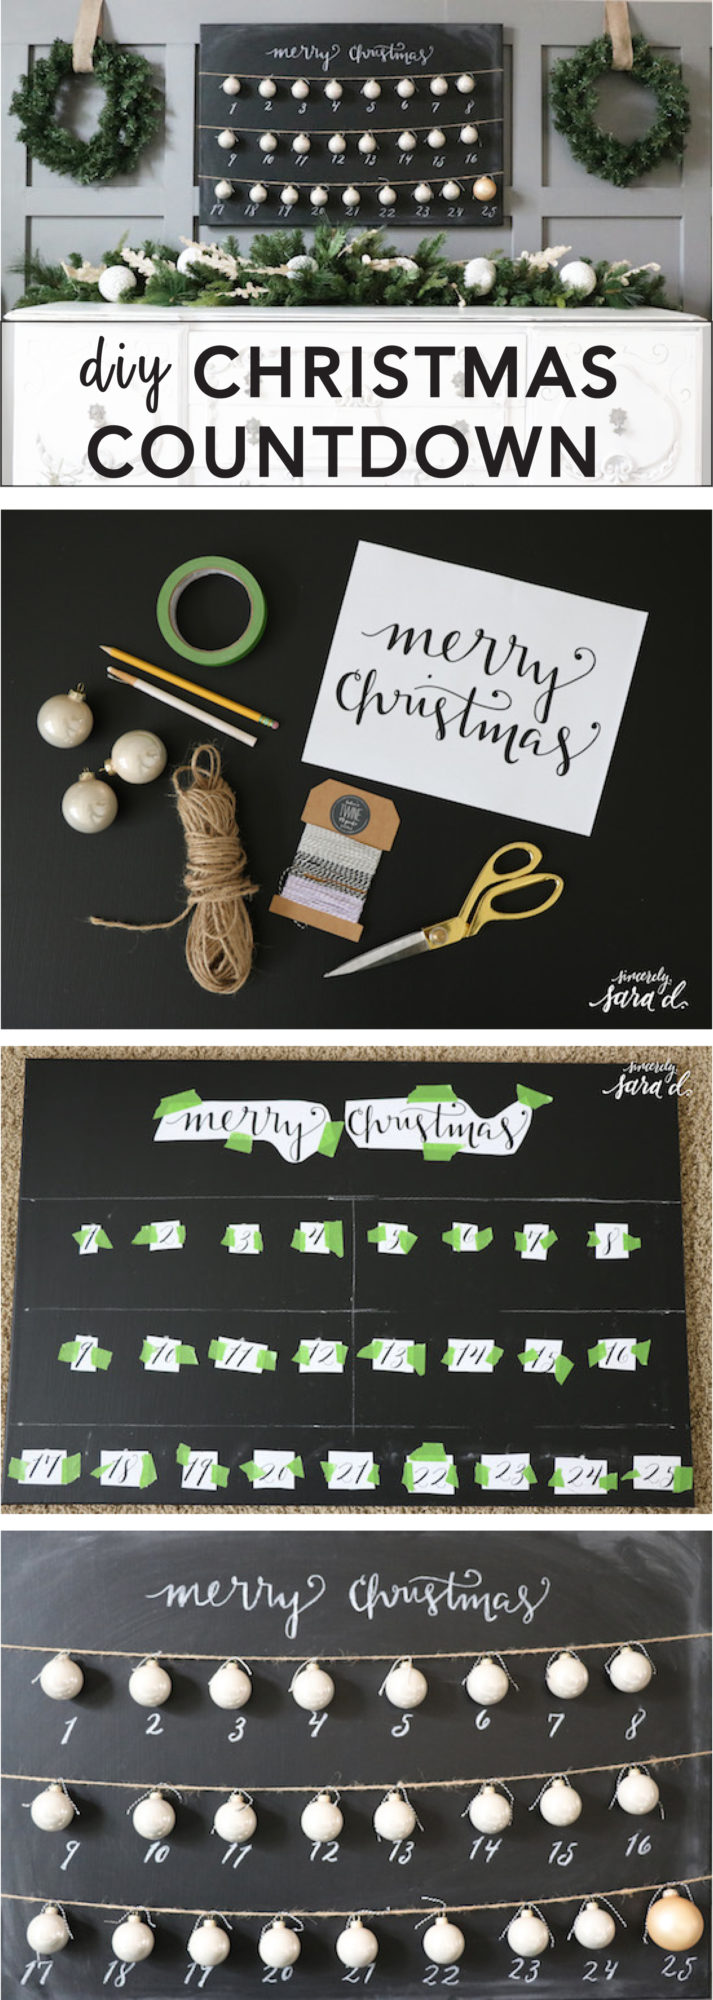 DIY Christmas Countdown Tutorial